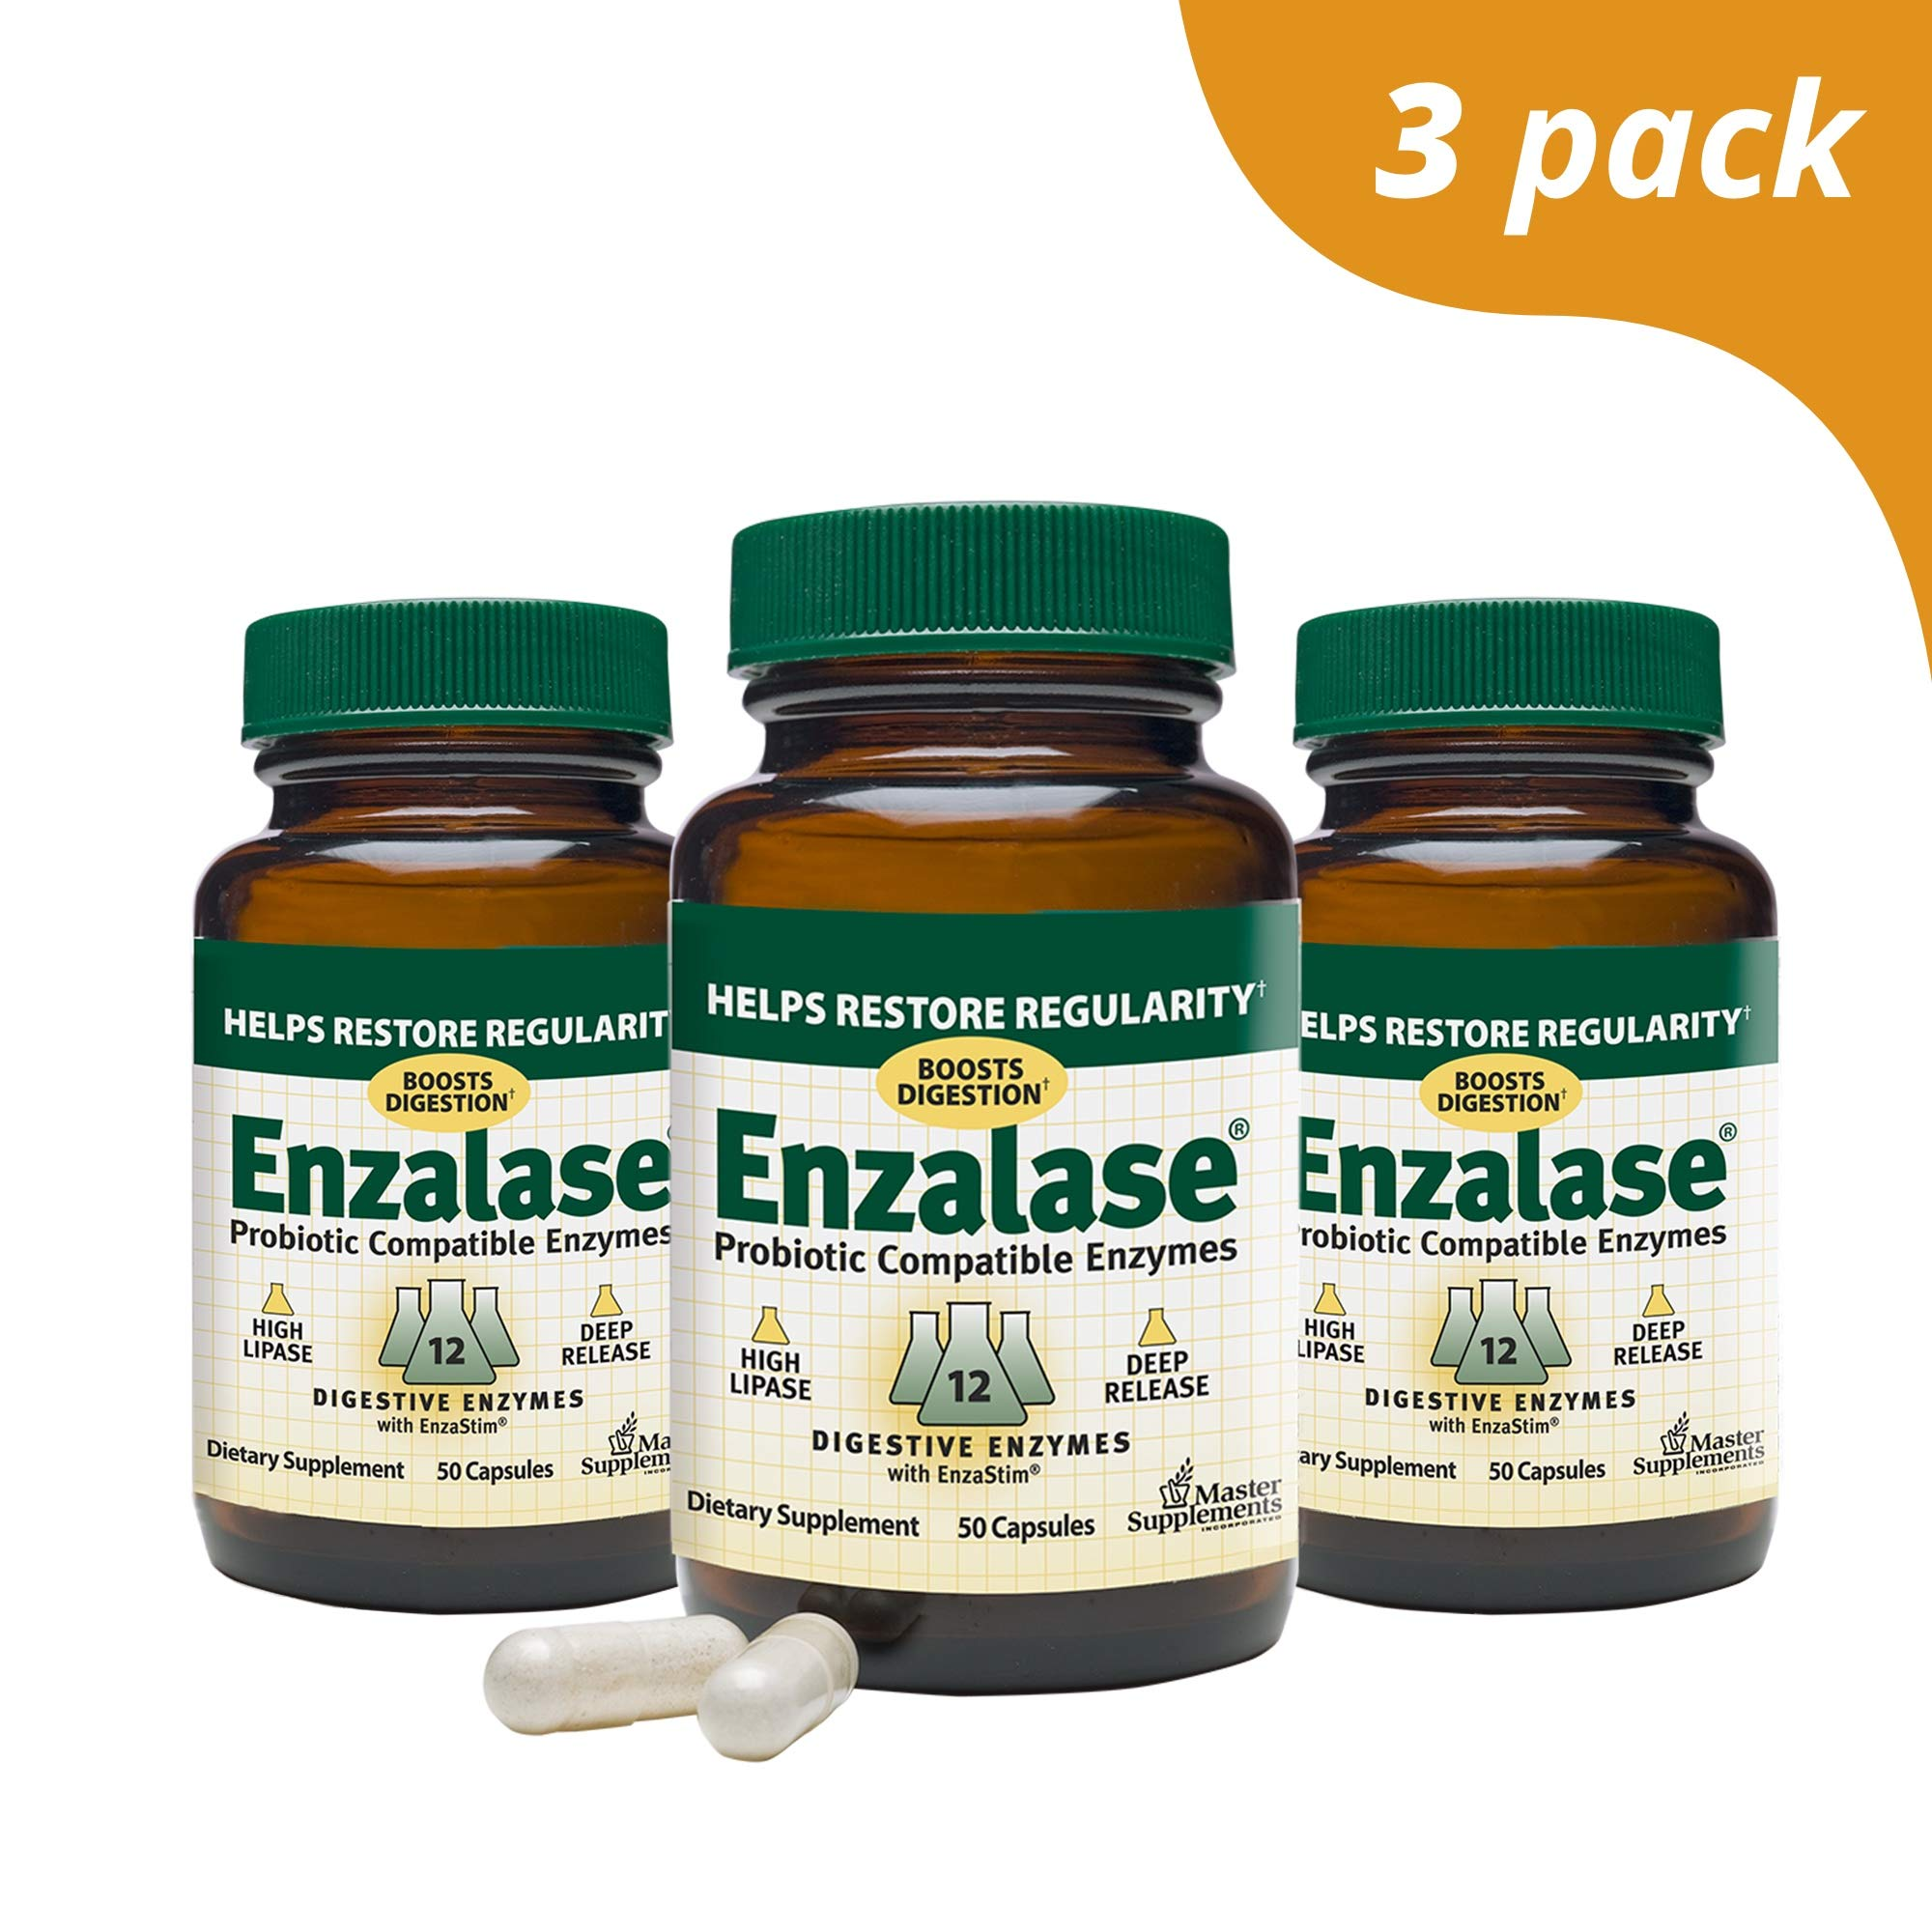 Master Supplements Enzalase (3 Pack) - 50 Vegan Capsules - Probiotic Compatible Enzyme Supplement, Provides Digestive Boost, Gas and Bloating Relief - Gluten Free - 50 Servings